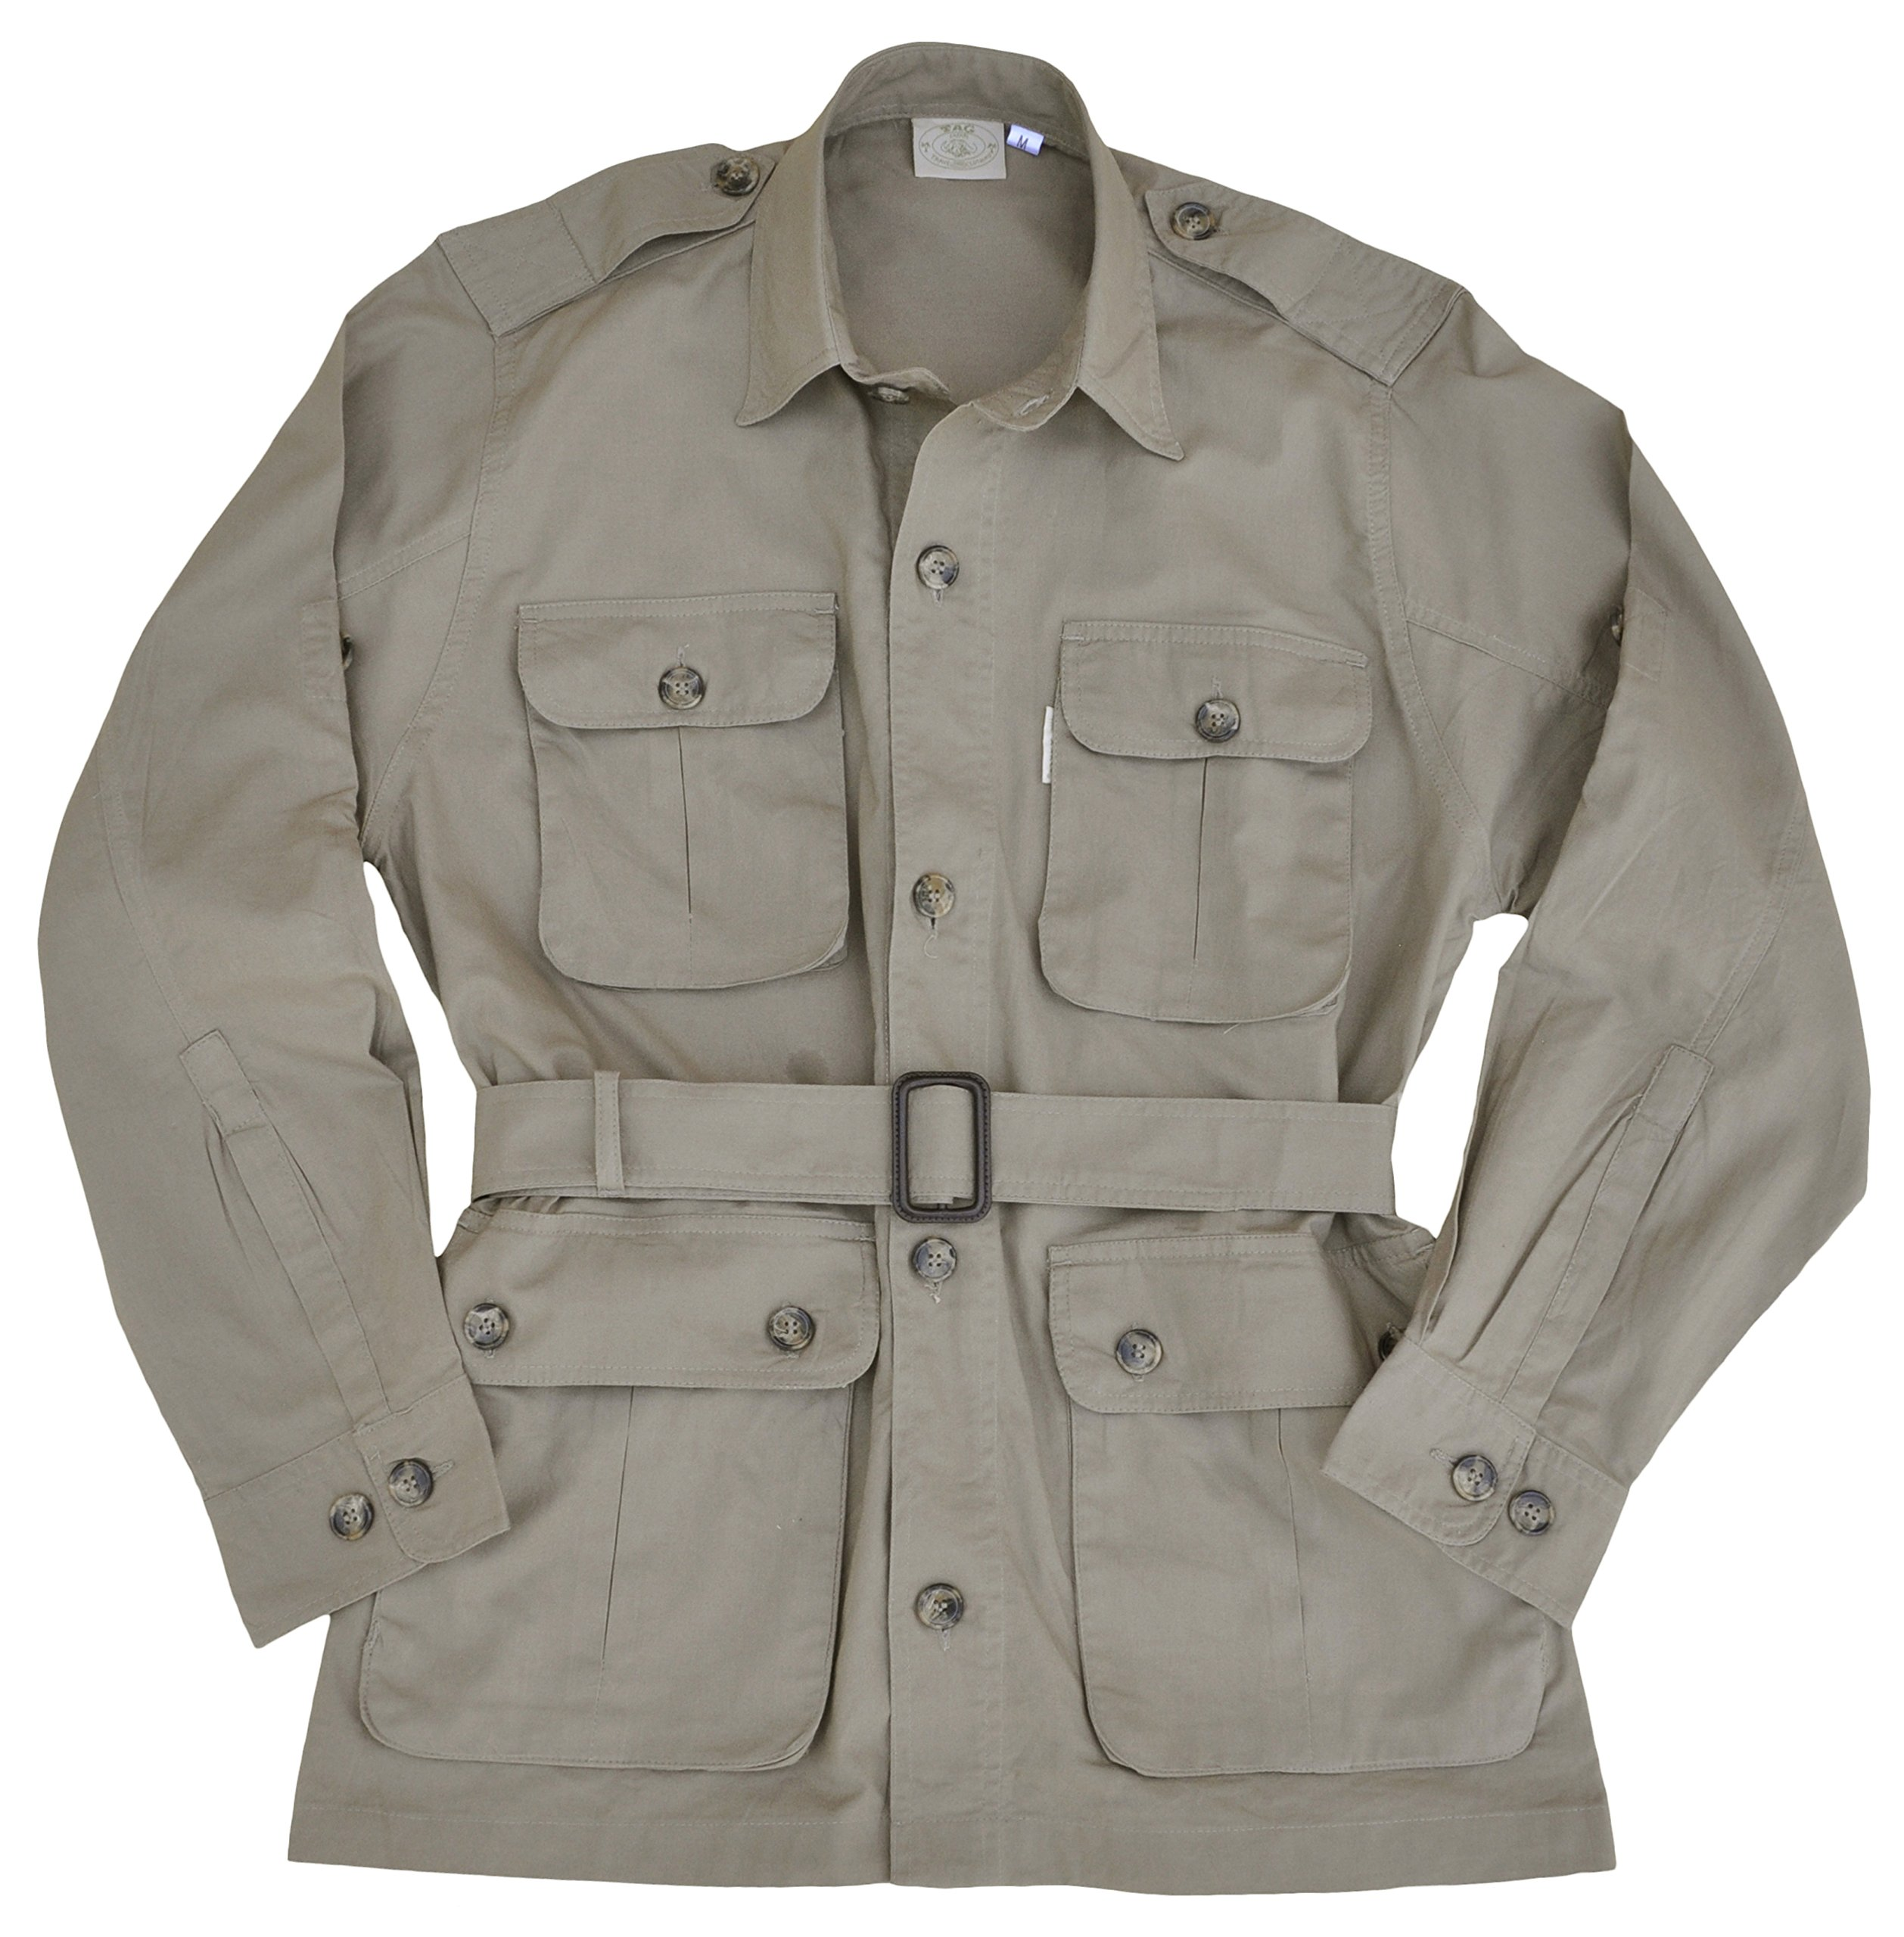 Safari Jacket for Men-Khaki-X Large by Tag Safari